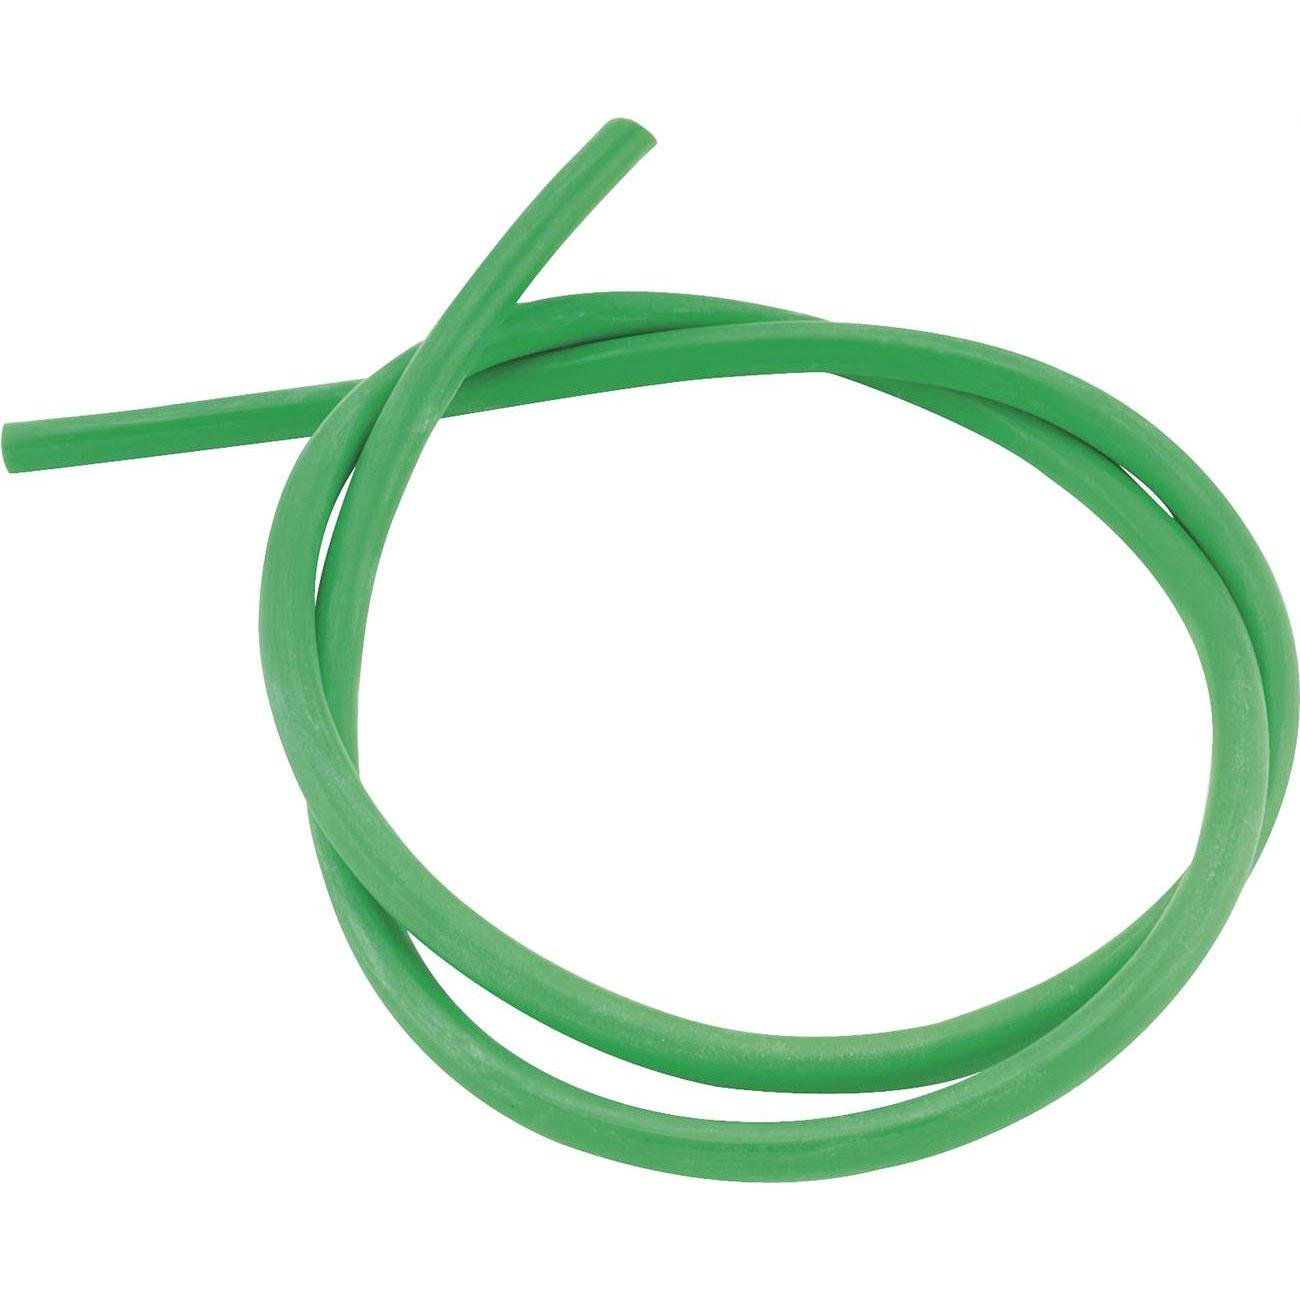 Helix Racing Fuel Line 3/8 IDx1/2 ODx3 Feet Transparent Green